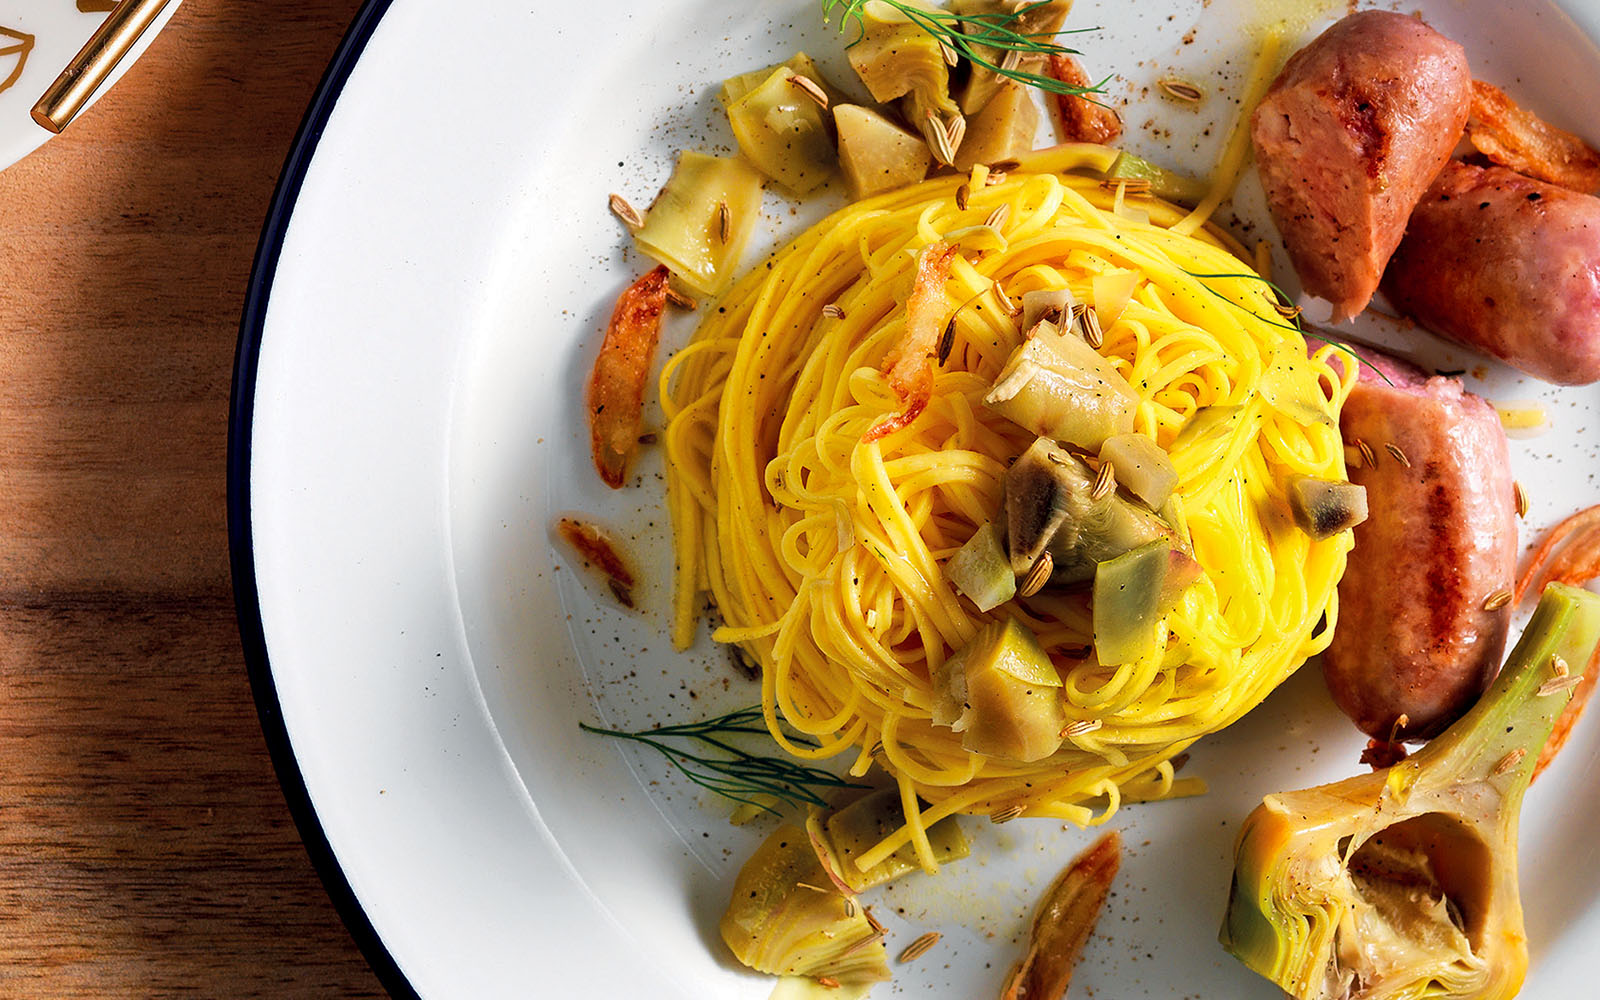 Recipe Tagliolini with artichokes, sausage and crunchy shallots